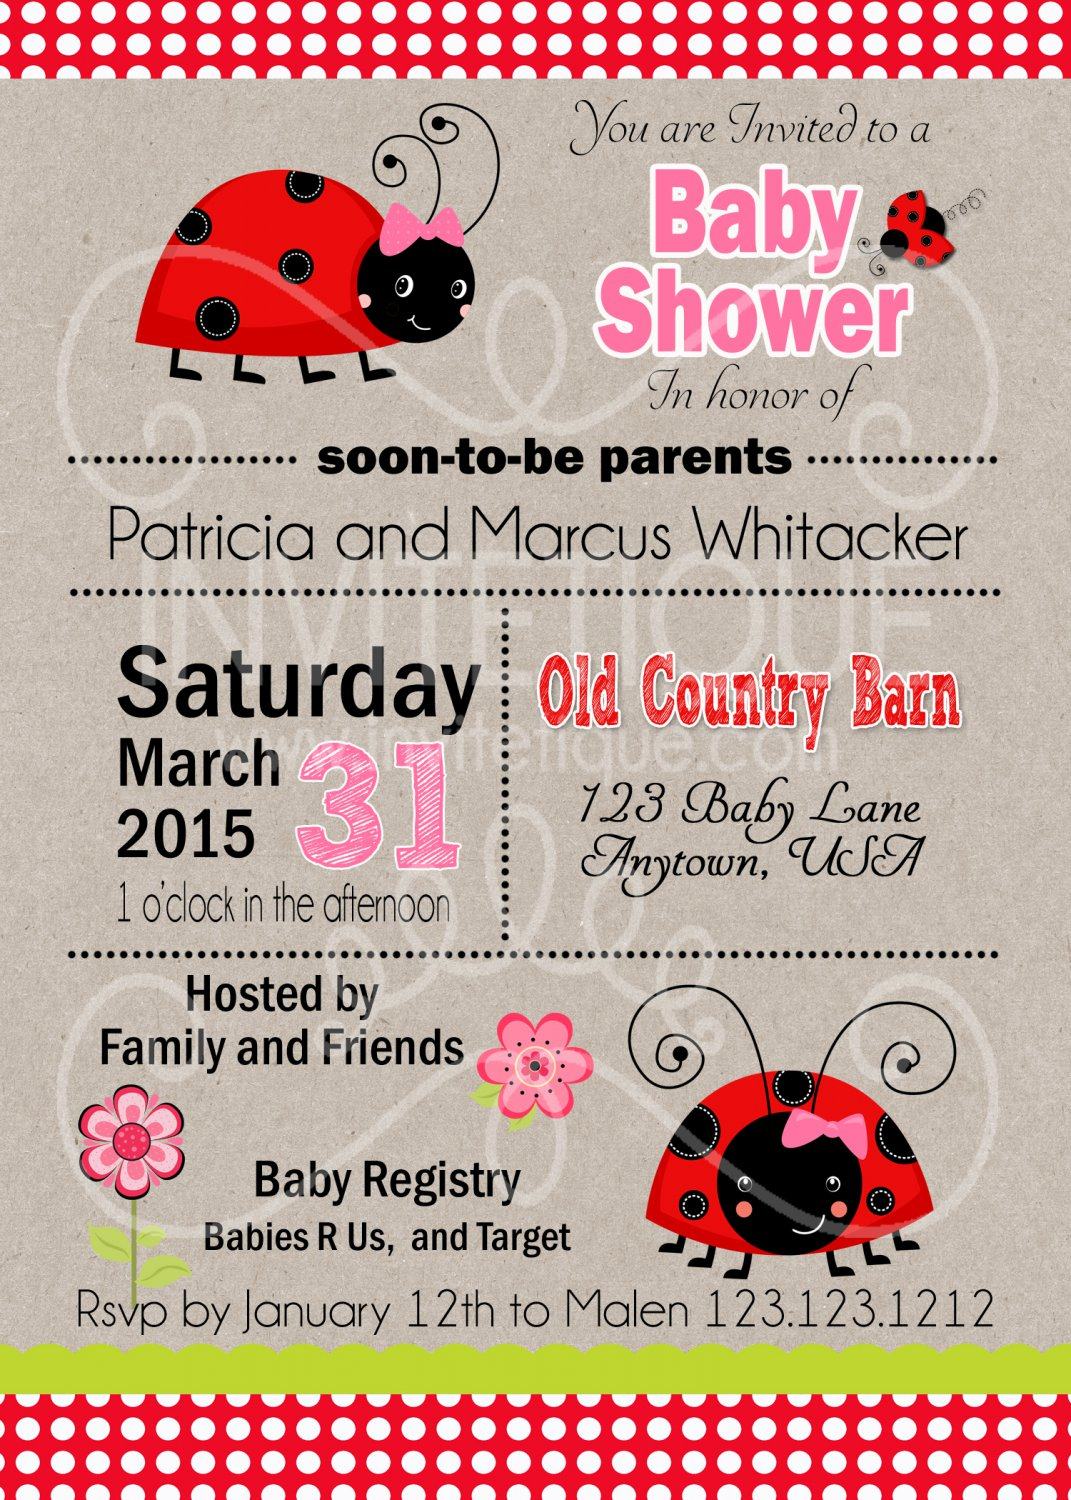 Ladybug Birthday Invitation Baby Shower Party Invitation Birthday